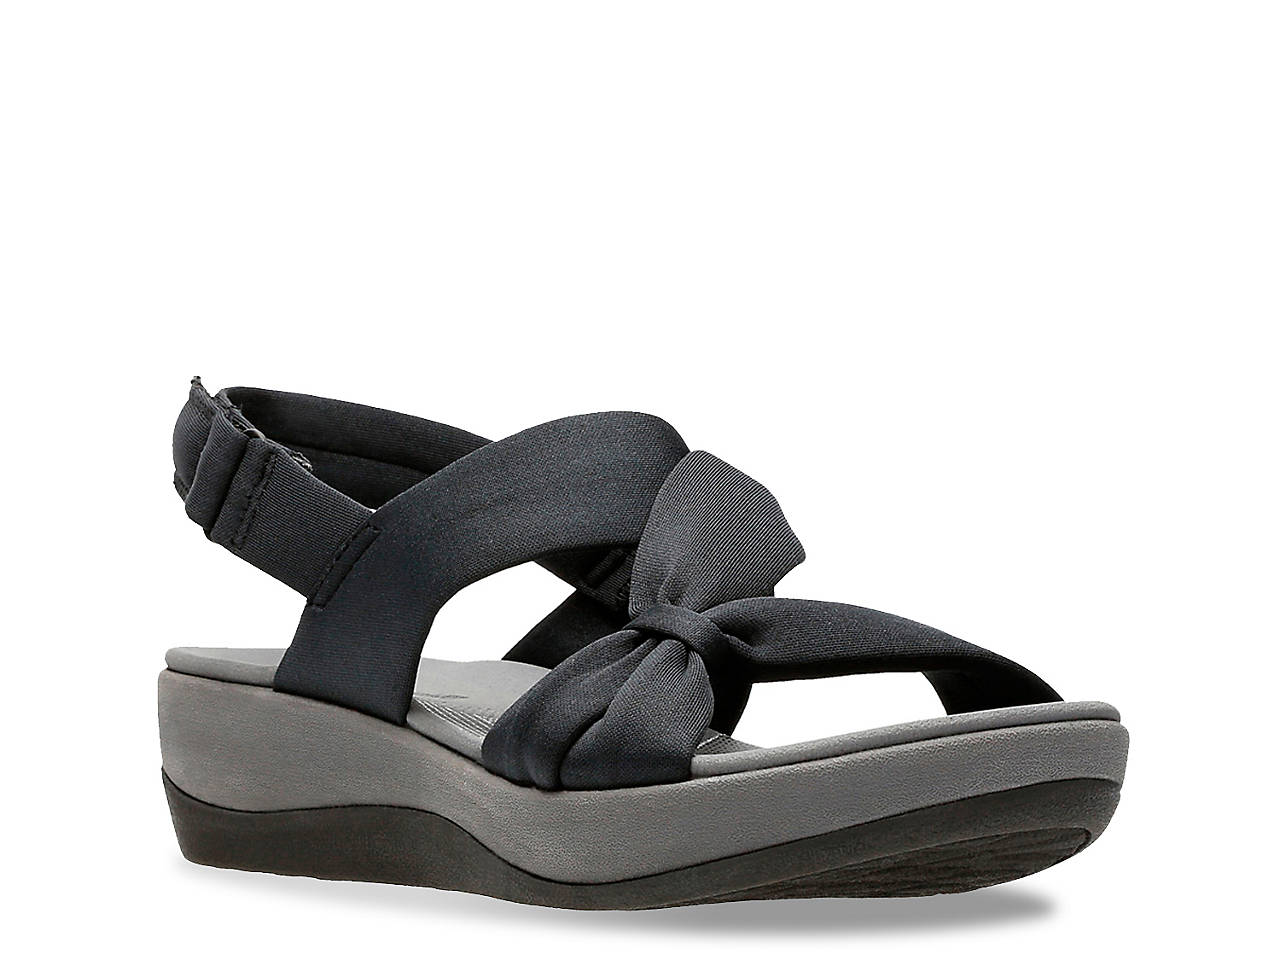 c9070e6c4945 Cloudsteppers by Clarks Arla Primrose Wedge Sandal Women s Shoes